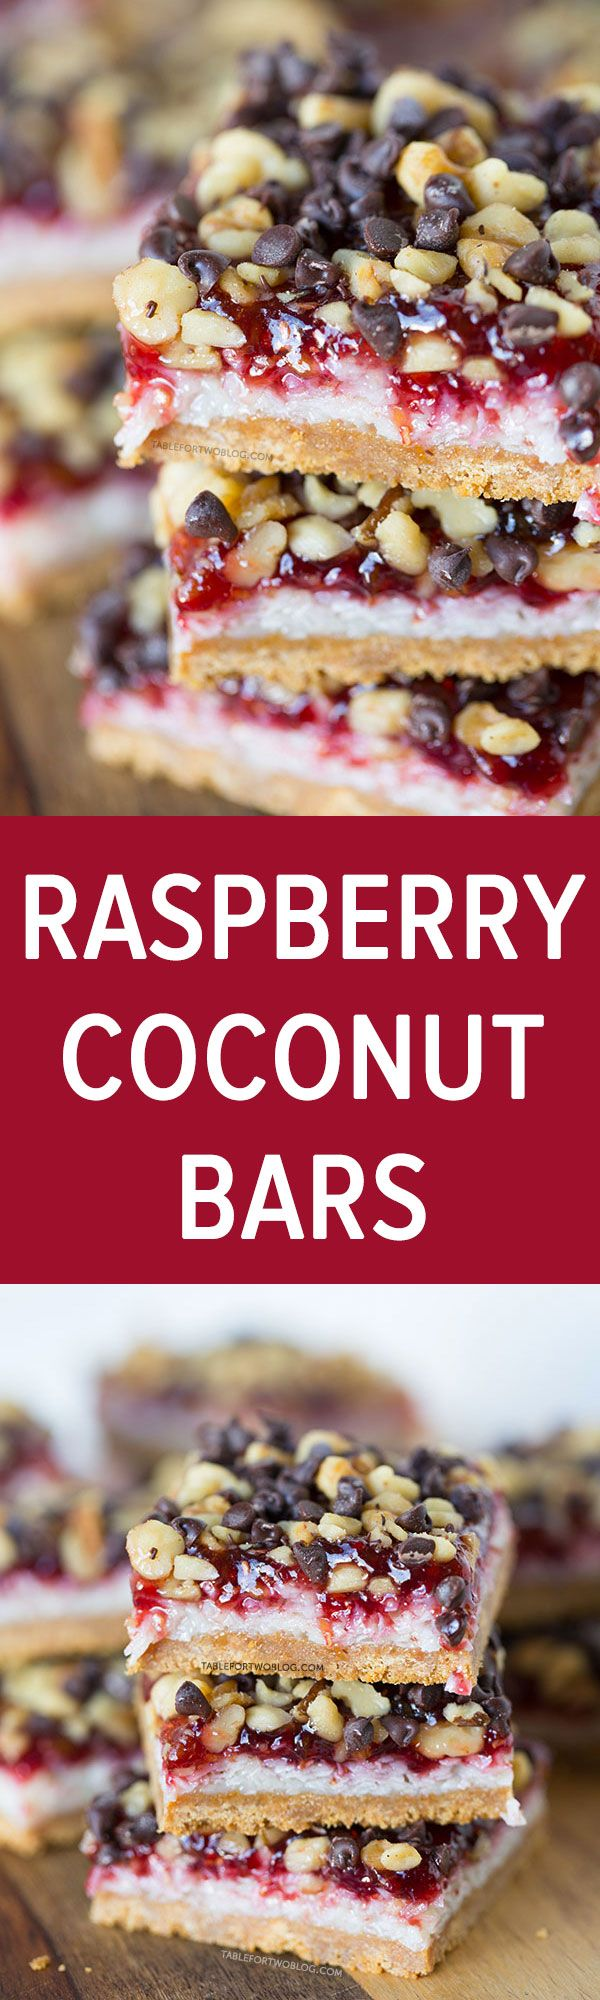 These raspberry coconut bars are every coconut and raspberry lover's dream! It will satisfy any sweet tooth!